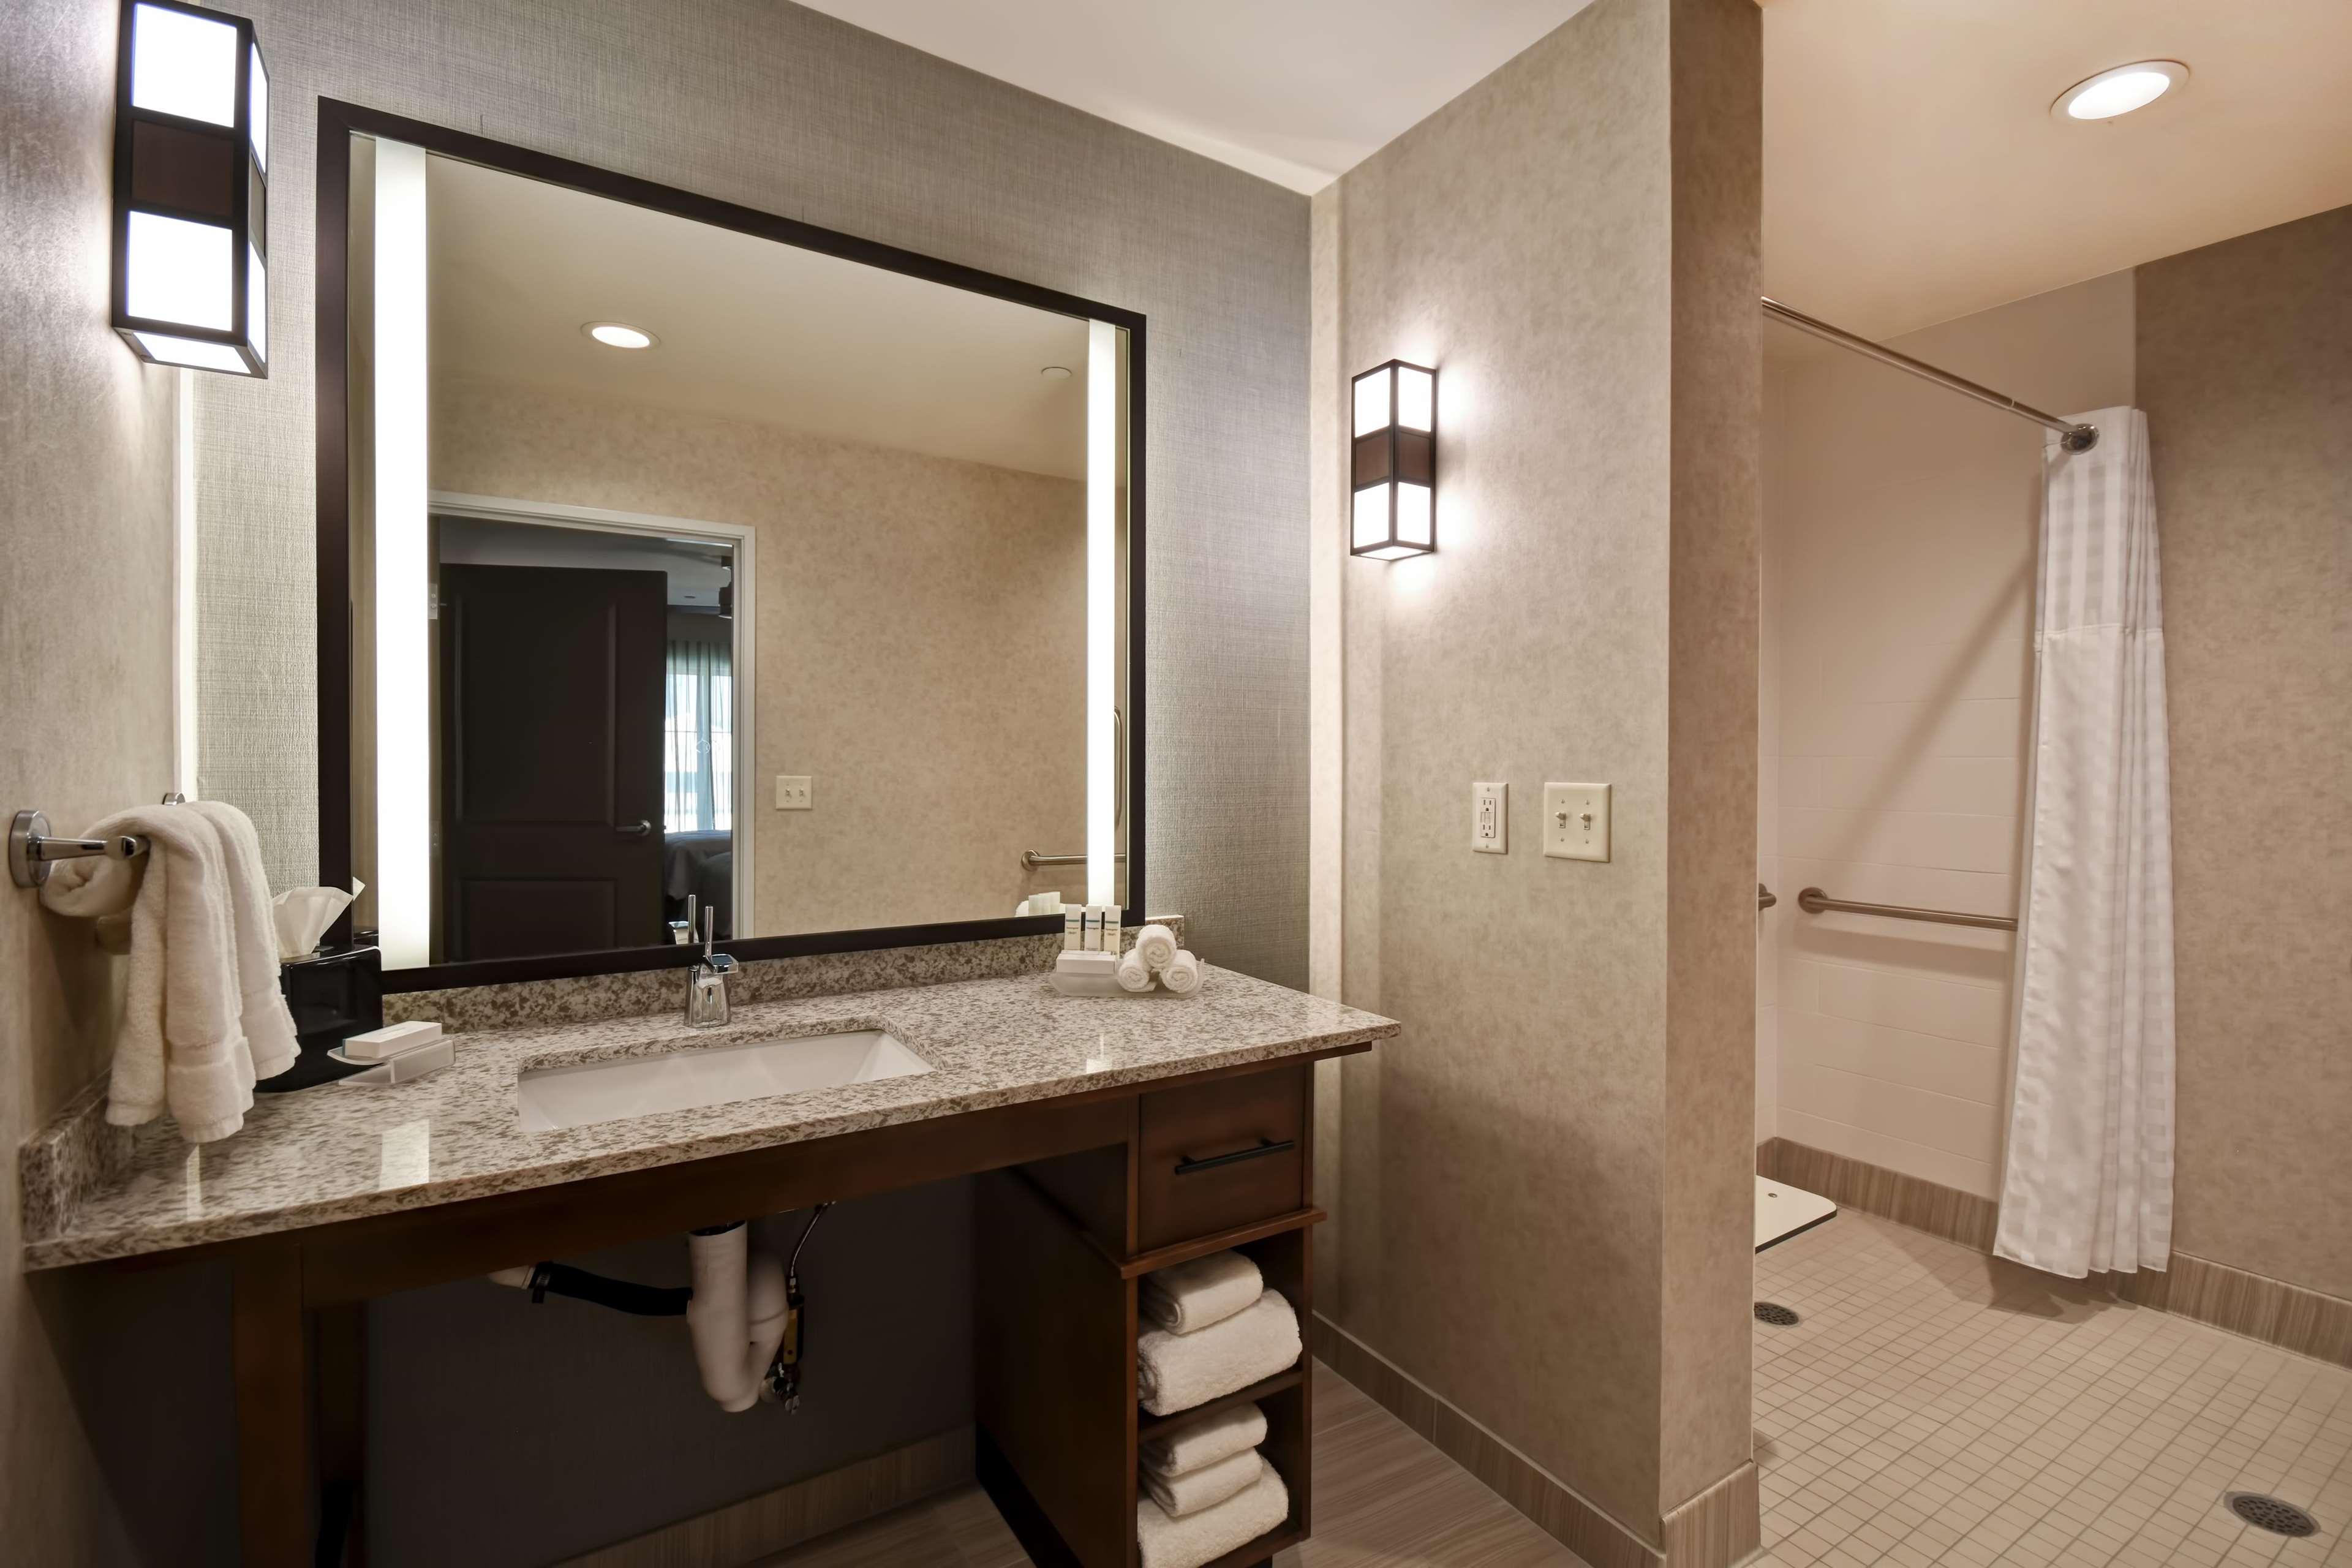 Homewood Suites by Hilton Pleasant Hill Concord image 10